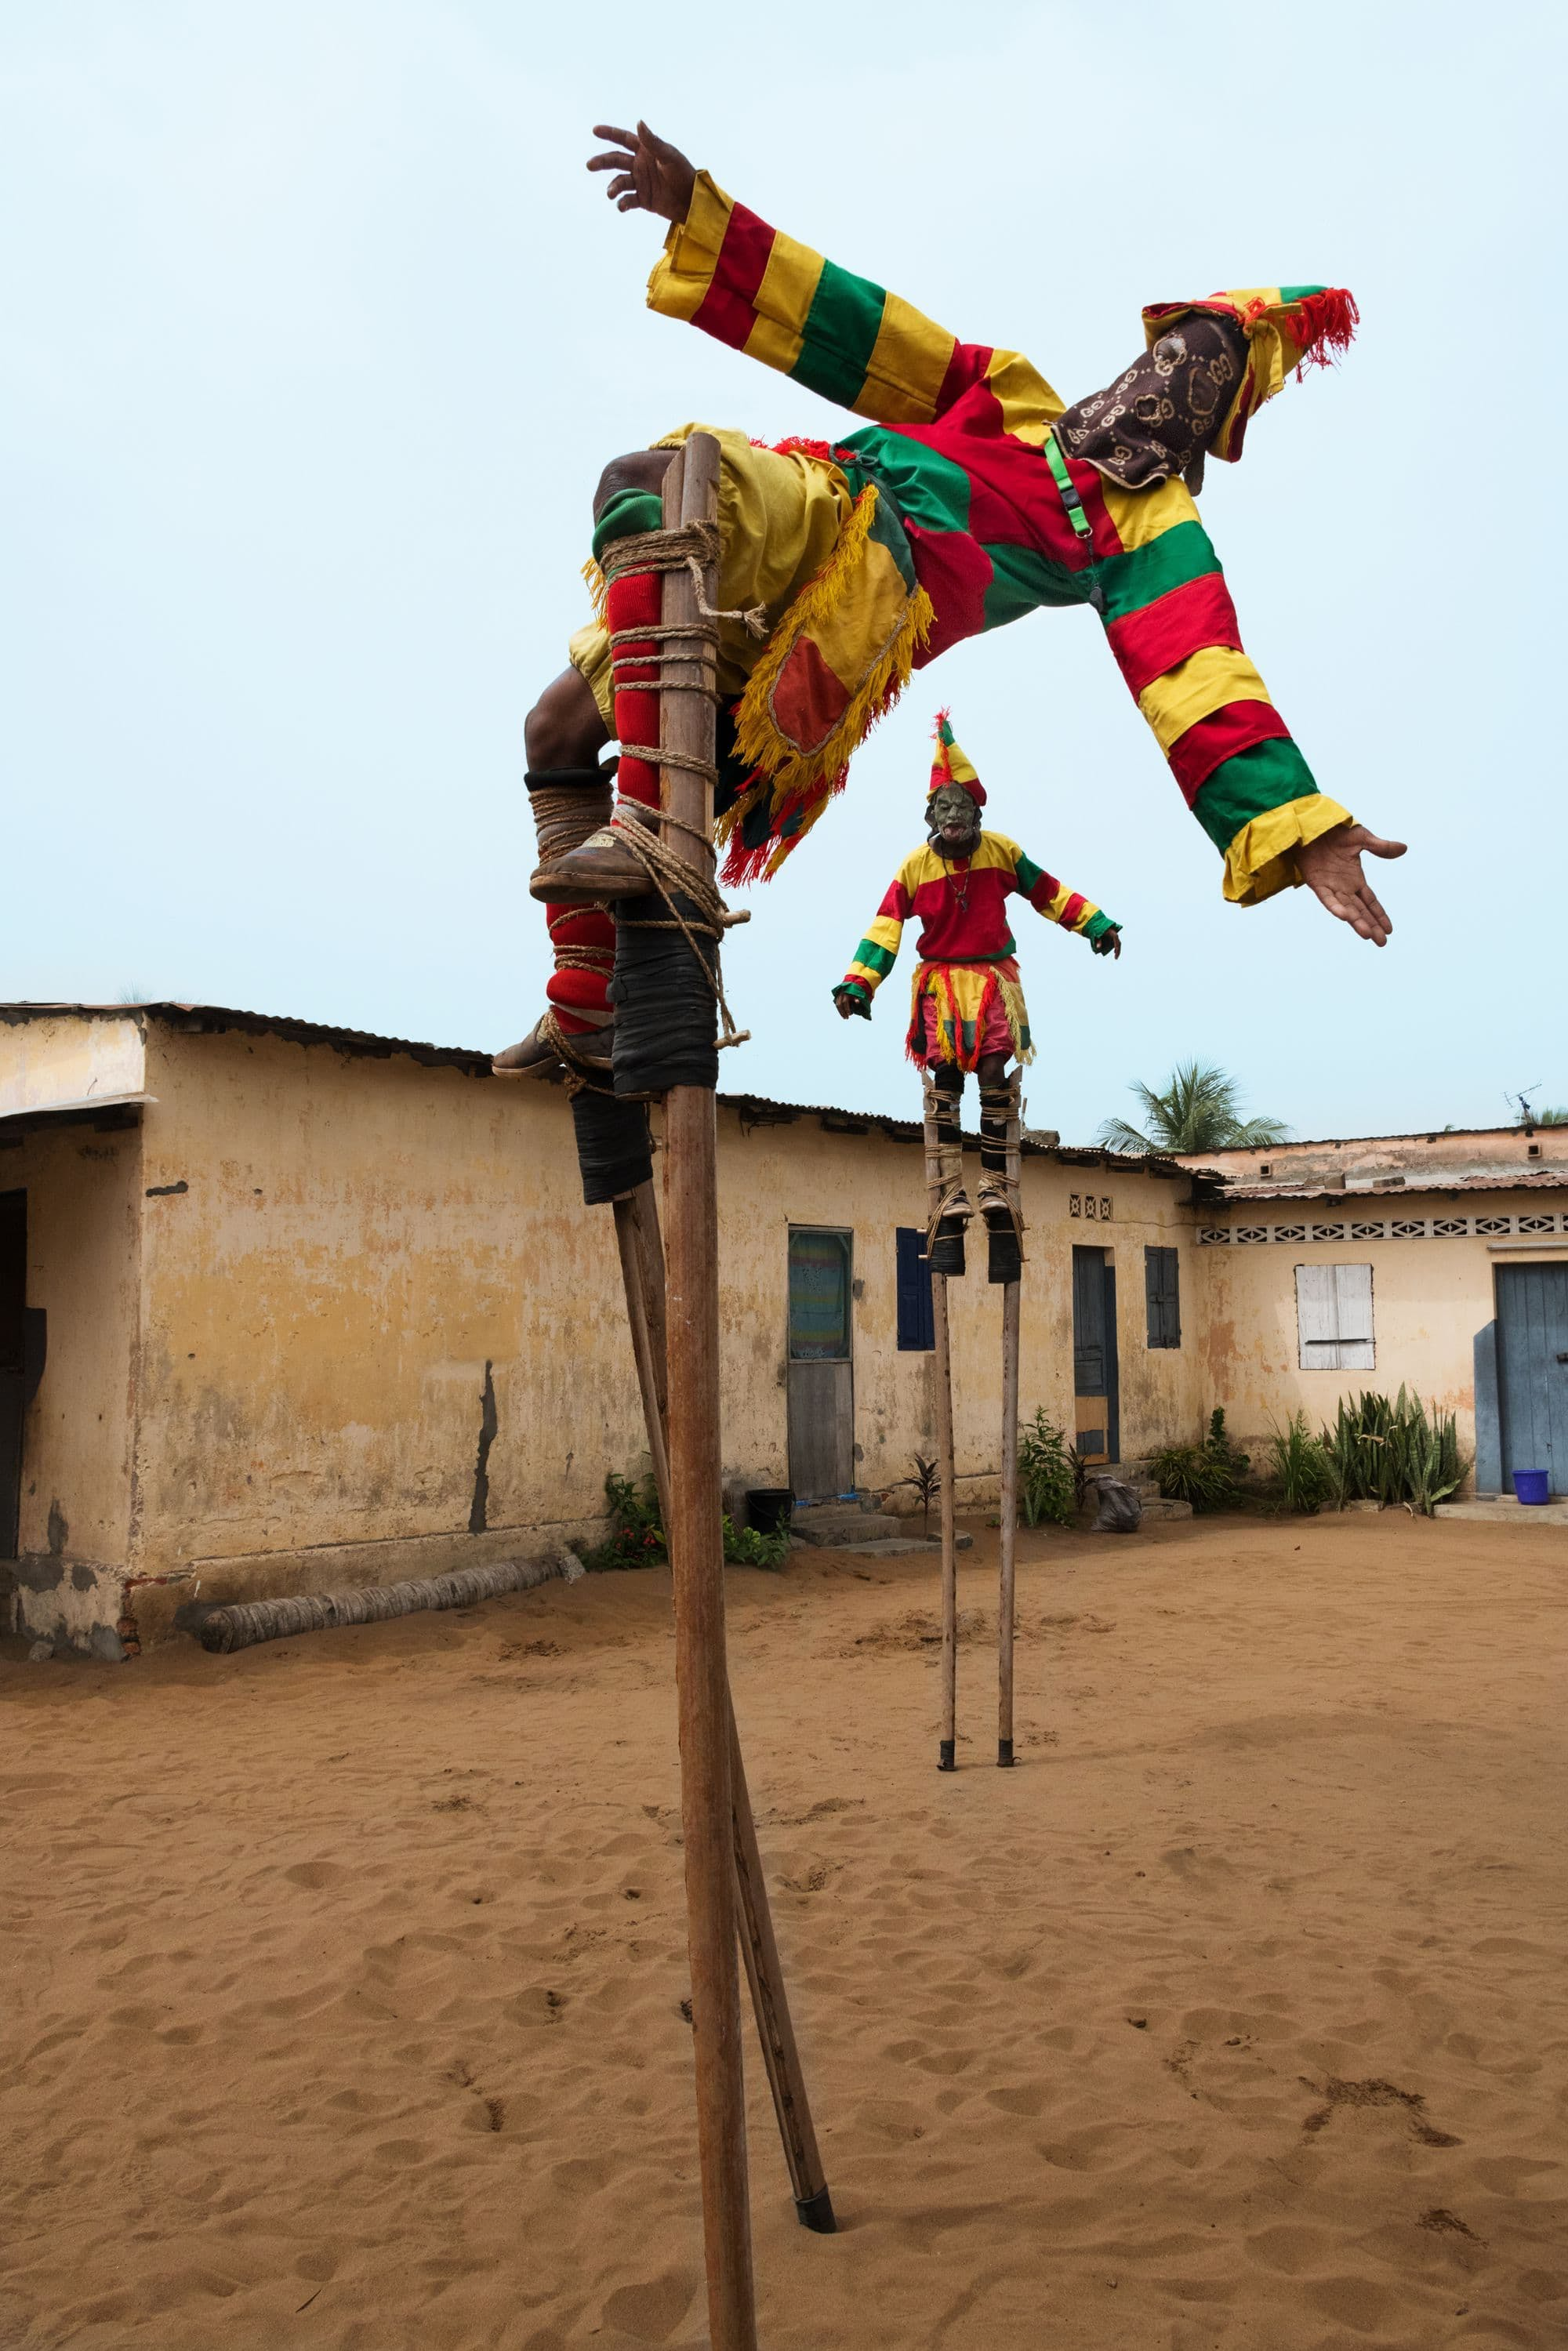 West Africa by Steve McCurry